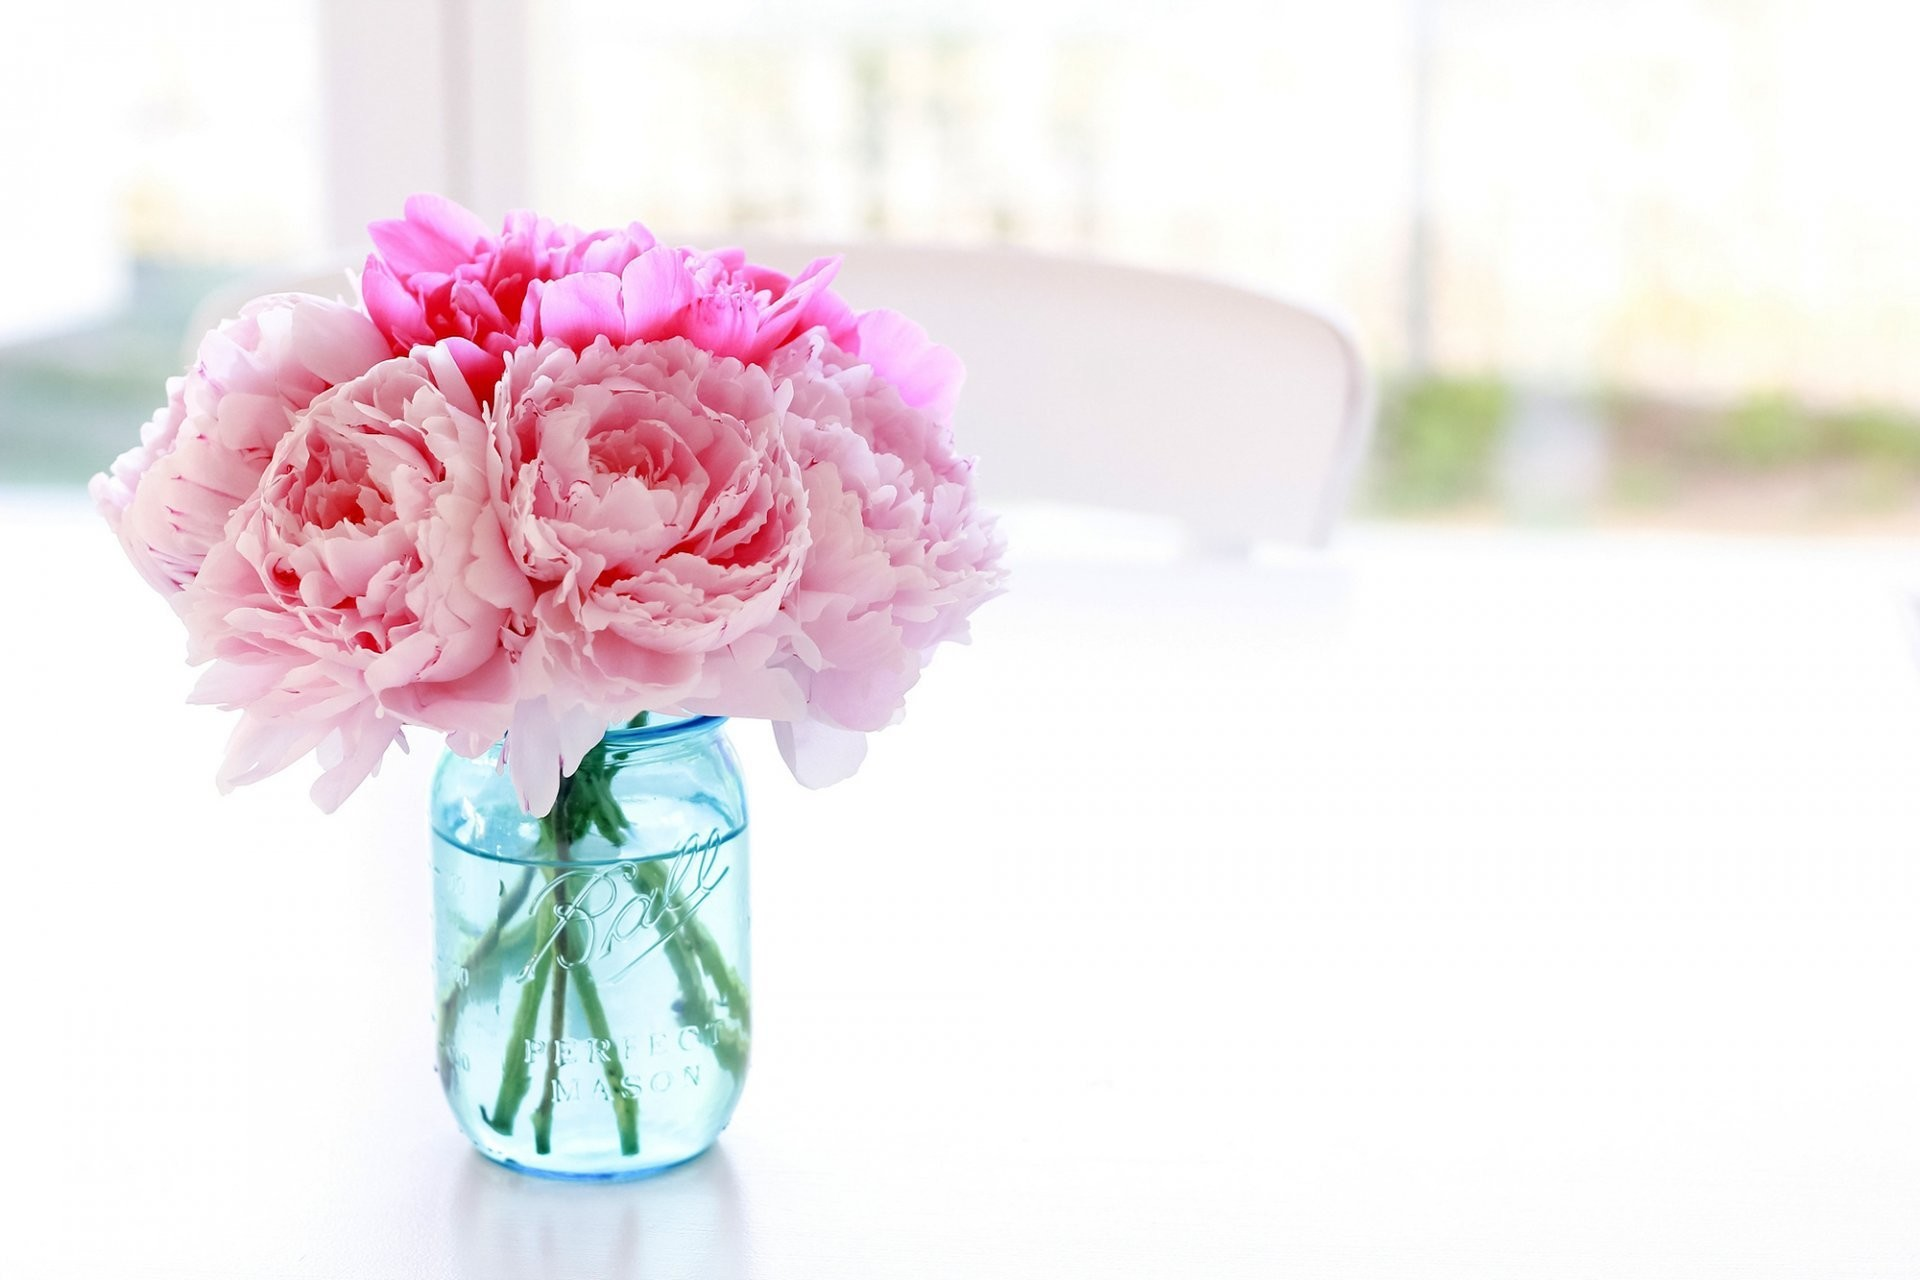 Res: 1920x1280, peonies flower pink of the bank jar vase blue table chair background white